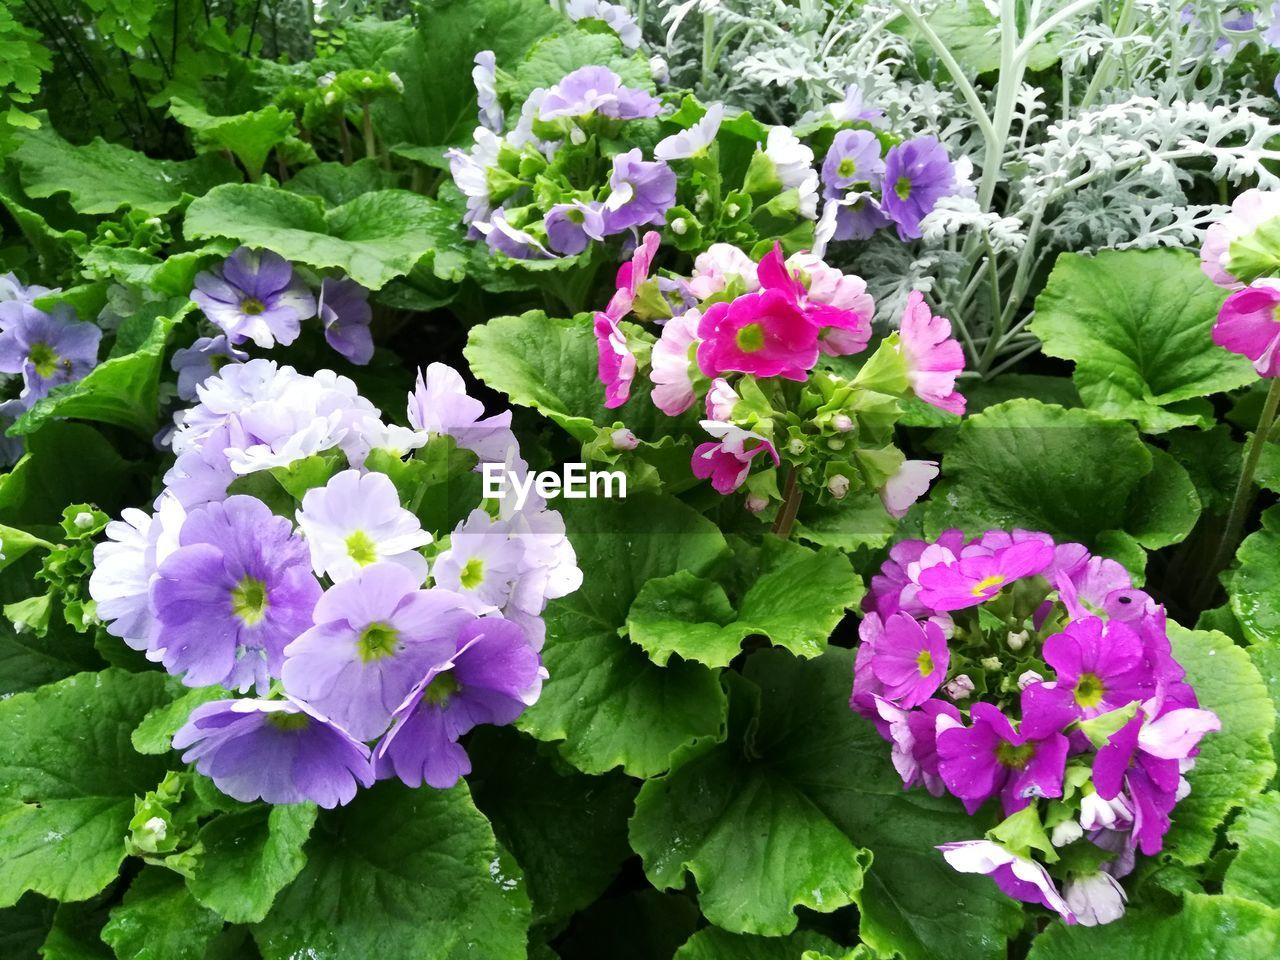 flowering plant, flower, plant, beauty in nature, freshness, vulnerability, growth, fragility, leaf, plant part, petal, inflorescence, flower head, nature, close-up, green color, day, no people, outdoors, pink color, purple, springtime